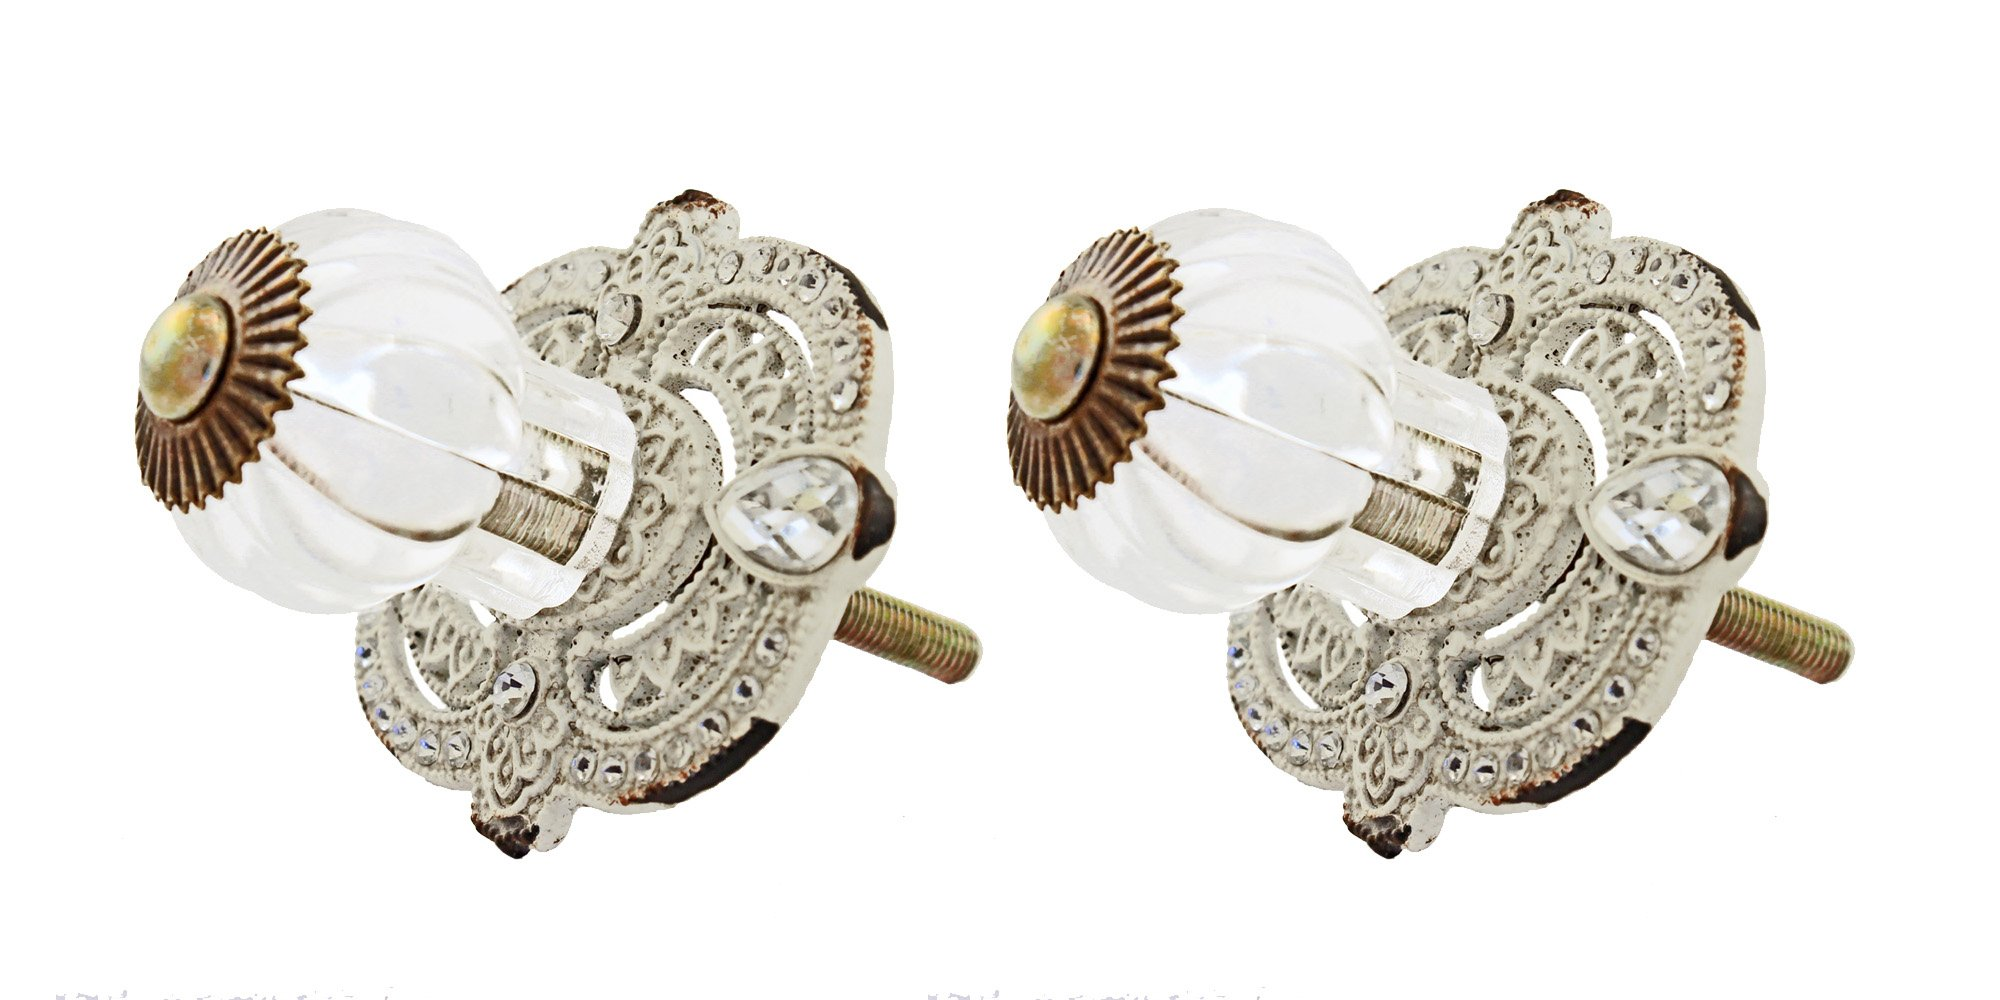 VIP Pewter and Rhinestone Victorian Drawer Pull with Acrylic Knob (2)